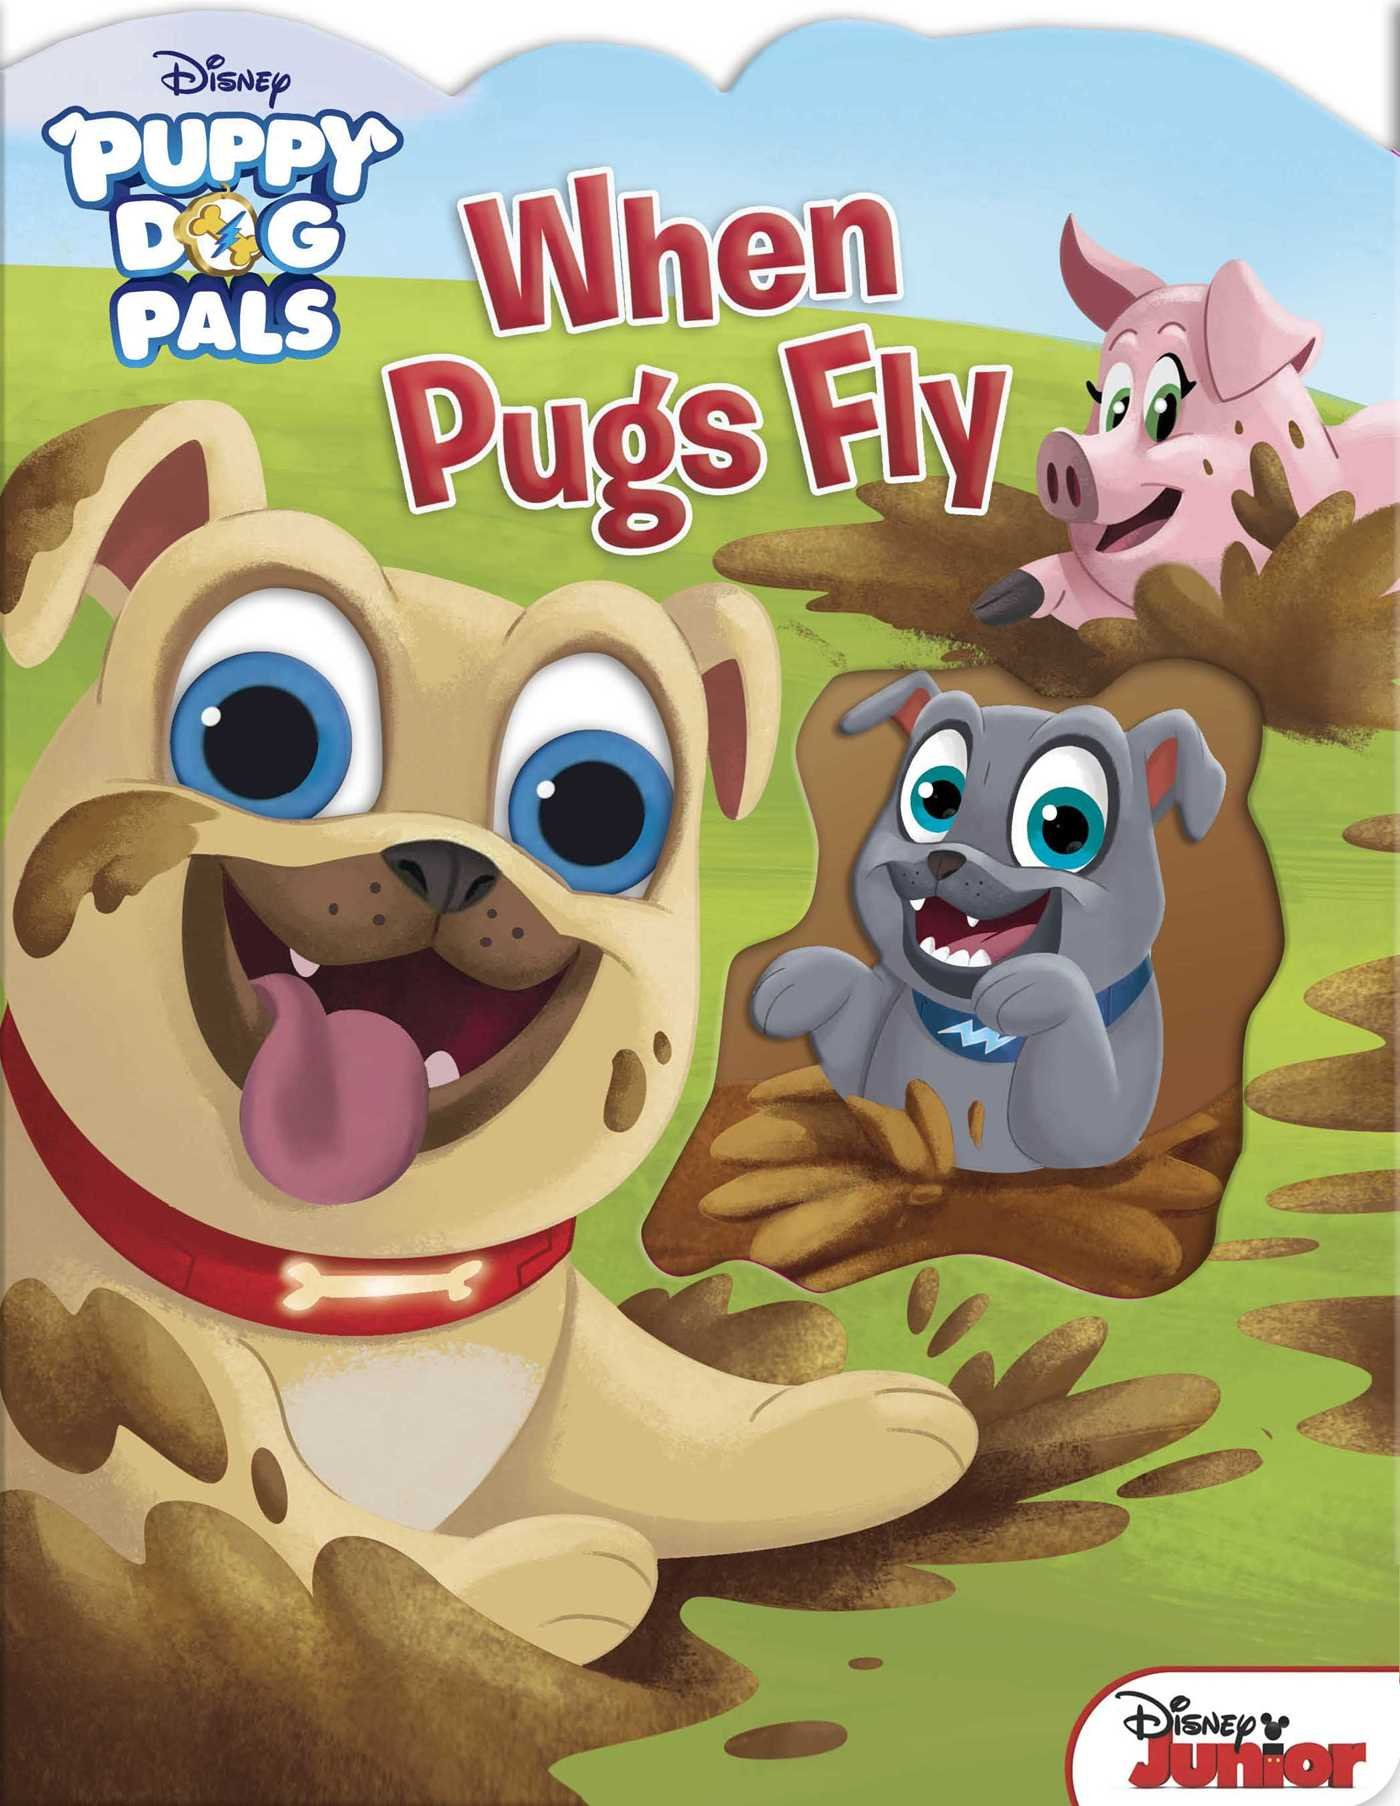 Disney Puppy Dog Pals: When Pugs Fly: Maggie Fischer, Fabrizio Petrossi:  9780794441296: Amazon.com: Books